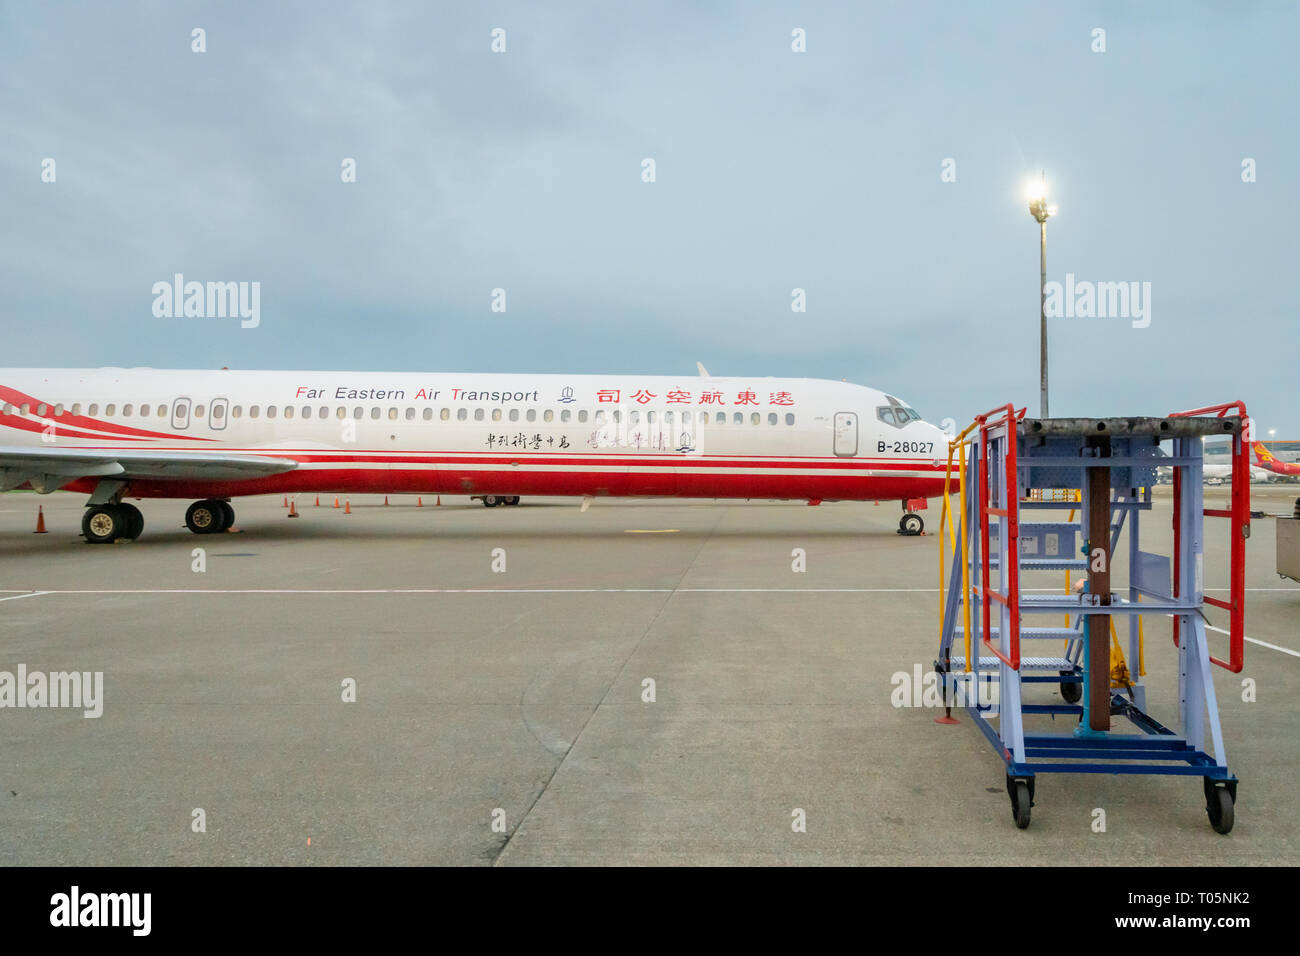 Taipei, Taiwan - March 2019:  Far Eastern Air Transport aircraft on runway of Taipei Taoyuan Airport. Far Eastern Air Transport is a regional airline - Stock Image